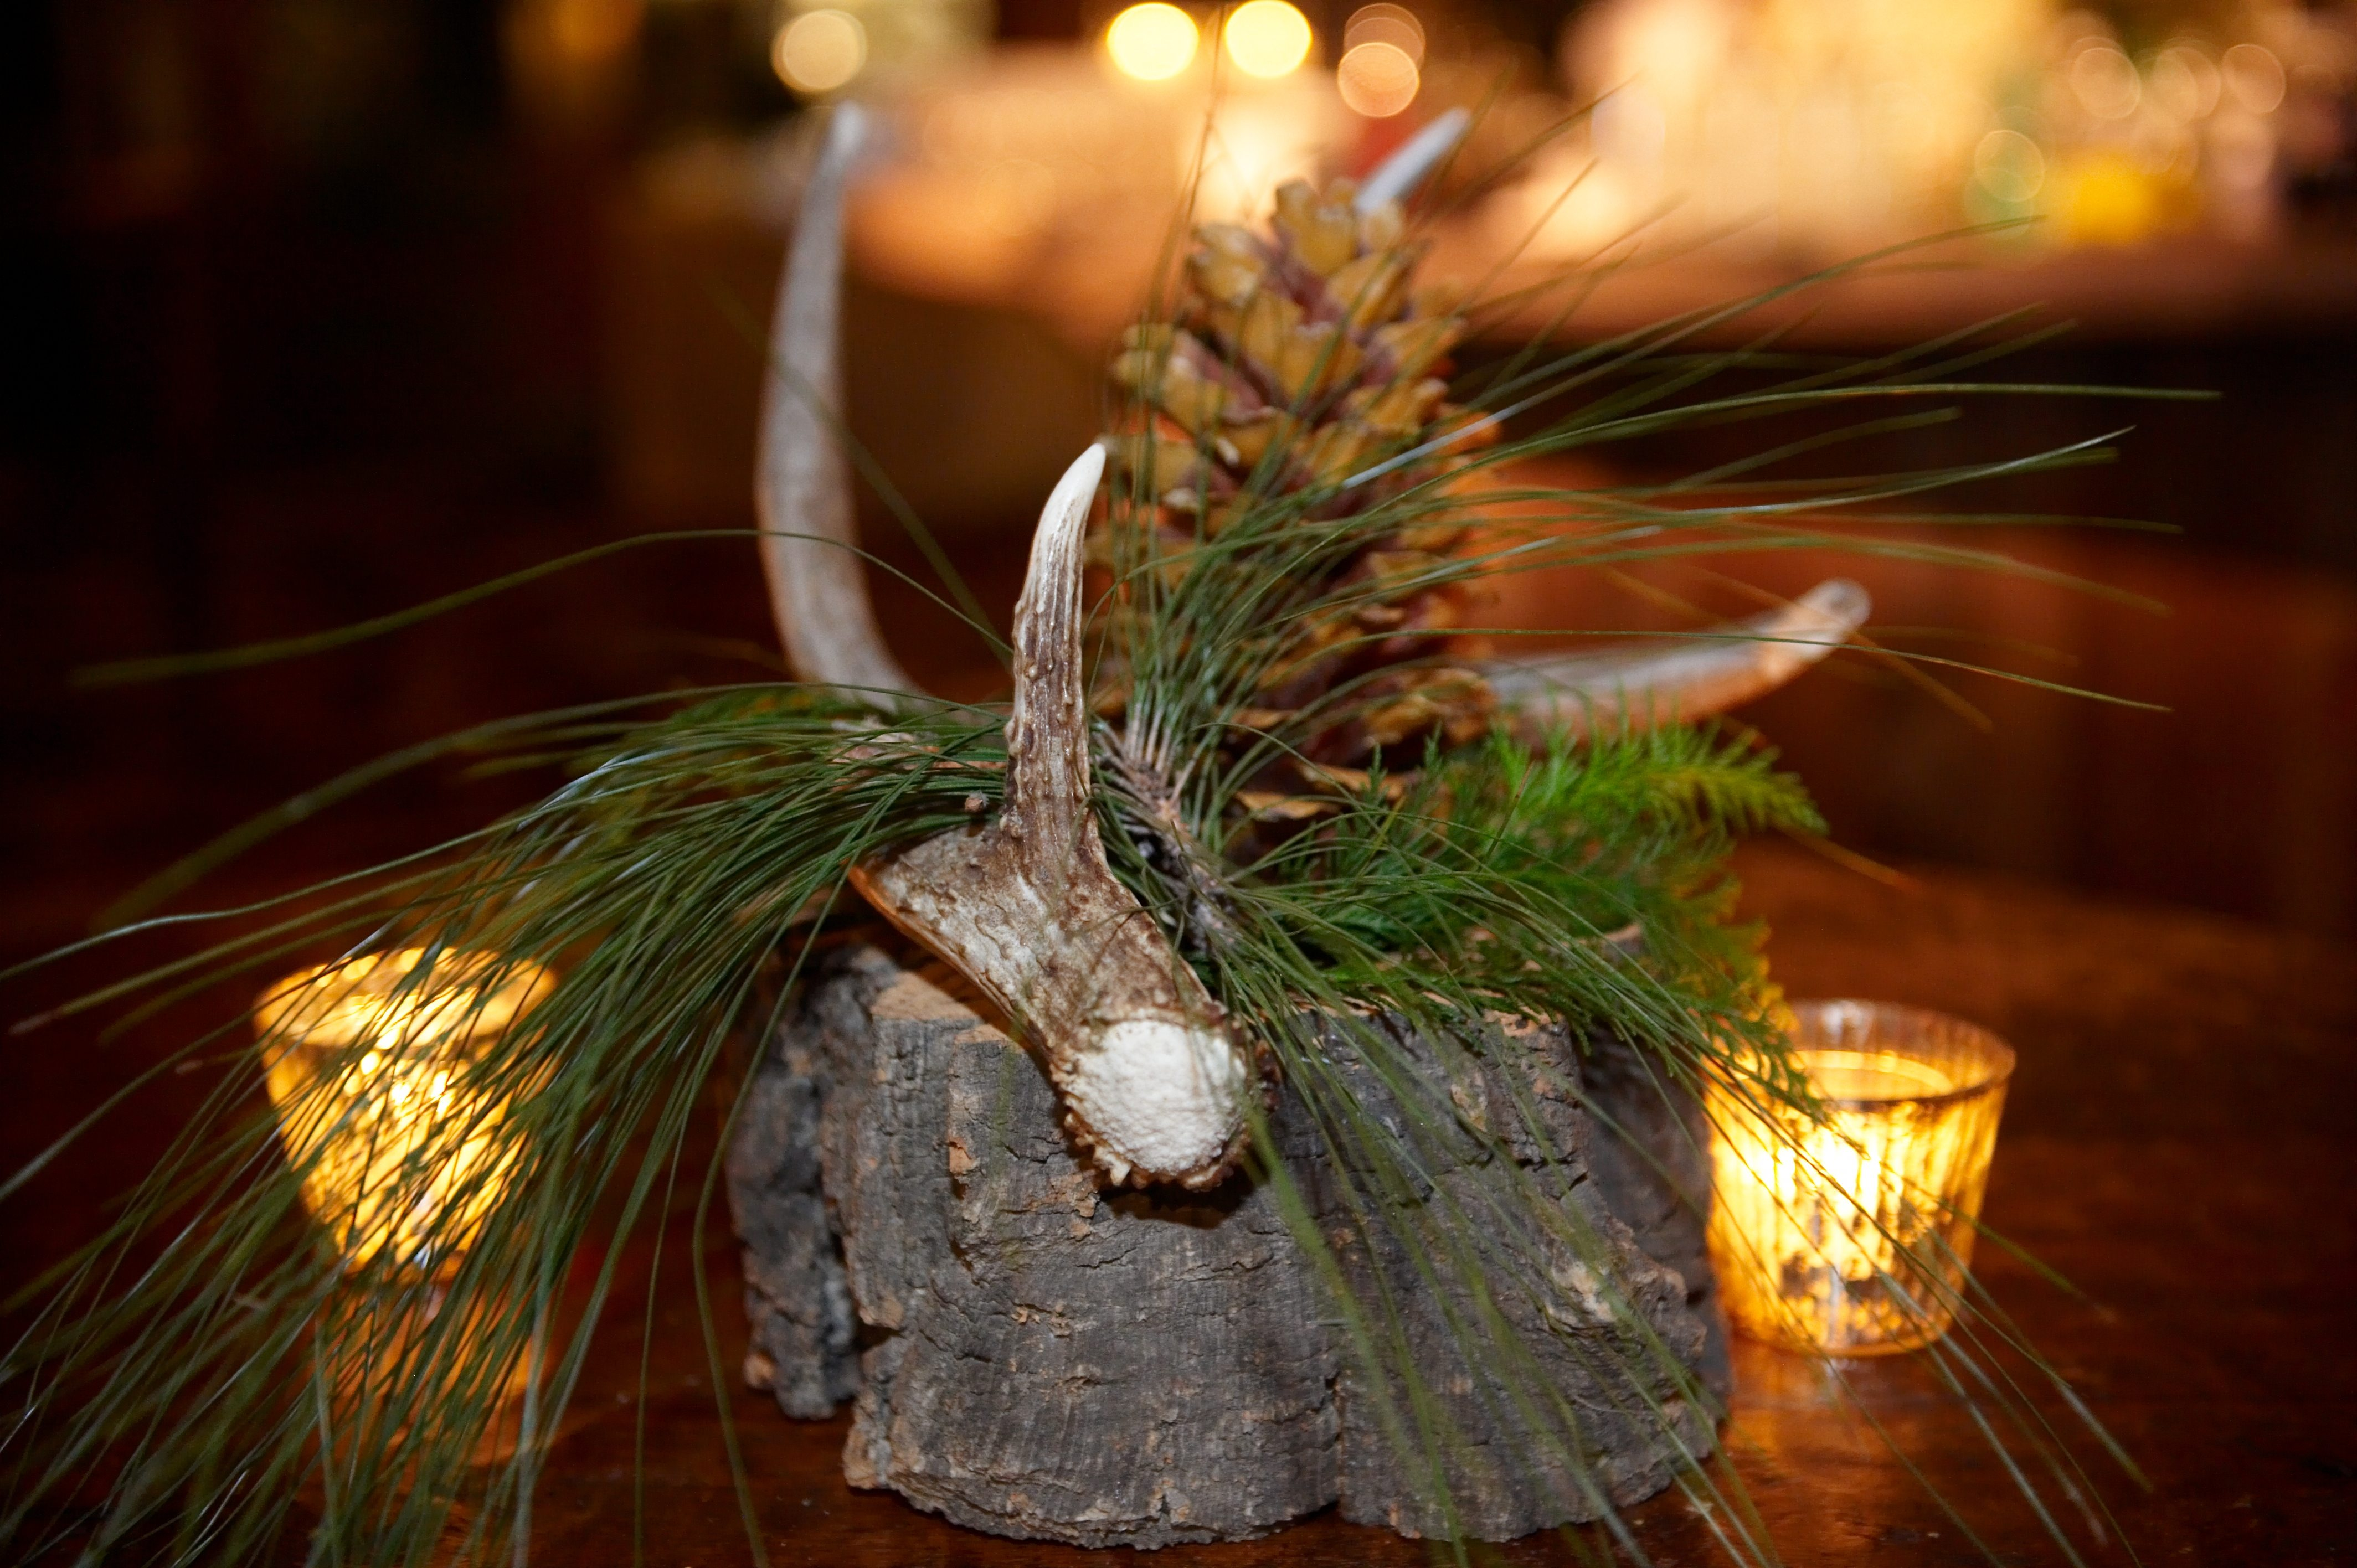 rustic wedding decor with large piece of tree trunk branch with antler and pine cone on top for centerpiece